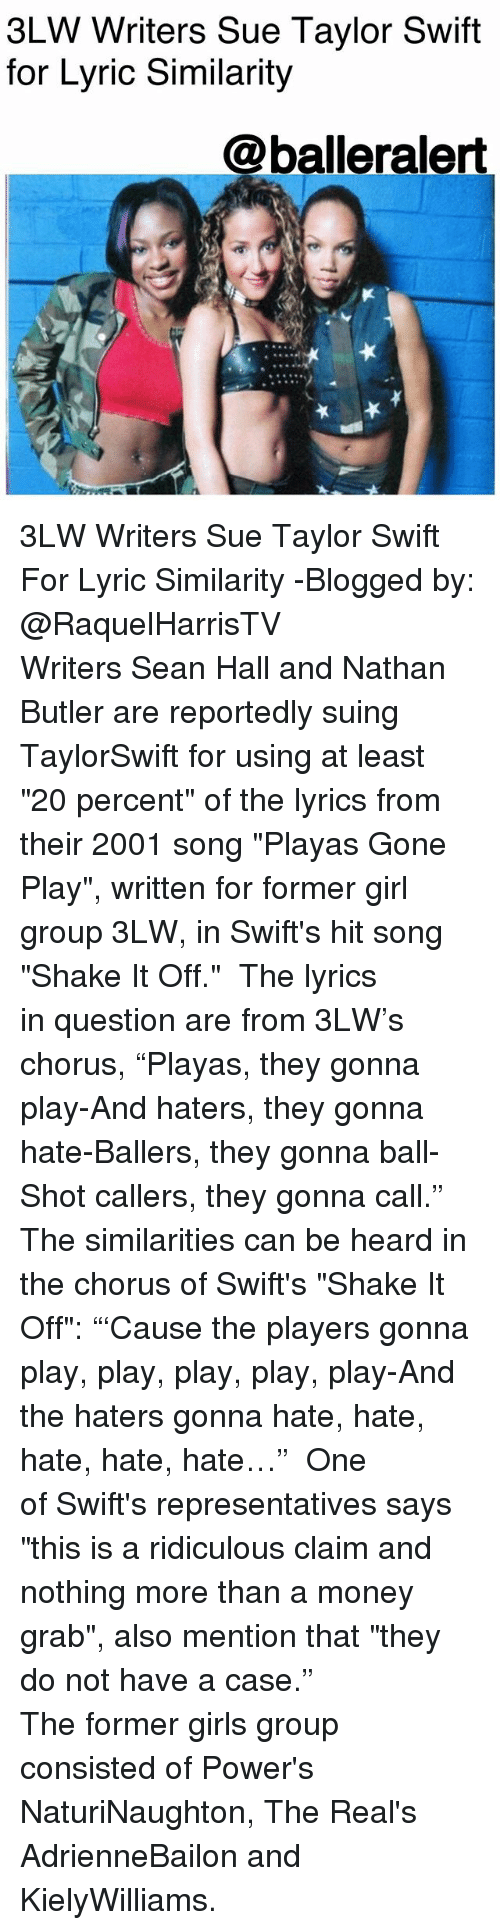 "Shake It Off: 3LW Writers Sue Taylor Swift  for Lyric Similarity  @balleralert 3LW Writers Sue Taylor Swift For Lyric Similarity -Blogged by: @RaquelHarrisTV ⠀⠀⠀⠀⠀⠀⠀⠀⠀ Writers Sean Hall and Nathan Butler are reportedly suing TaylorSwift for using at least ""20 percent"" of the lyrics from their 2001 song ""Playas Gone Play"", written for former girl group 3LW, in Swift's hit song ""Shake It Off."" ⠀⠀⠀⠀⠀⠀⠀⠀⠀ The lyrics in question are from 3LW's chorus, ""Playas, they gonna play-And haters, they gonna hate-Ballers, they gonna ball-Shot callers, they gonna call."" The similarities can be heard in the chorus of Swift's ""Shake It Off"": ""'Cause the players gonna play, play, play, play, play-And the haters gonna hate, hate, hate, hate, hate…"" ⠀⠀⠀⠀⠀⠀⠀⠀⠀ One of Swift's representatives says ""this is a ridiculous claim and nothing more than a money grab"", also mention that ""they do not have a case."" ⠀⠀⠀⠀⠀⠀⠀⠀⠀ ⠀⠀⠀⠀⠀⠀⠀ The former girls group consisted of Power's NaturiNaughton, The Real's AdrienneBailon and KielyWilliams."